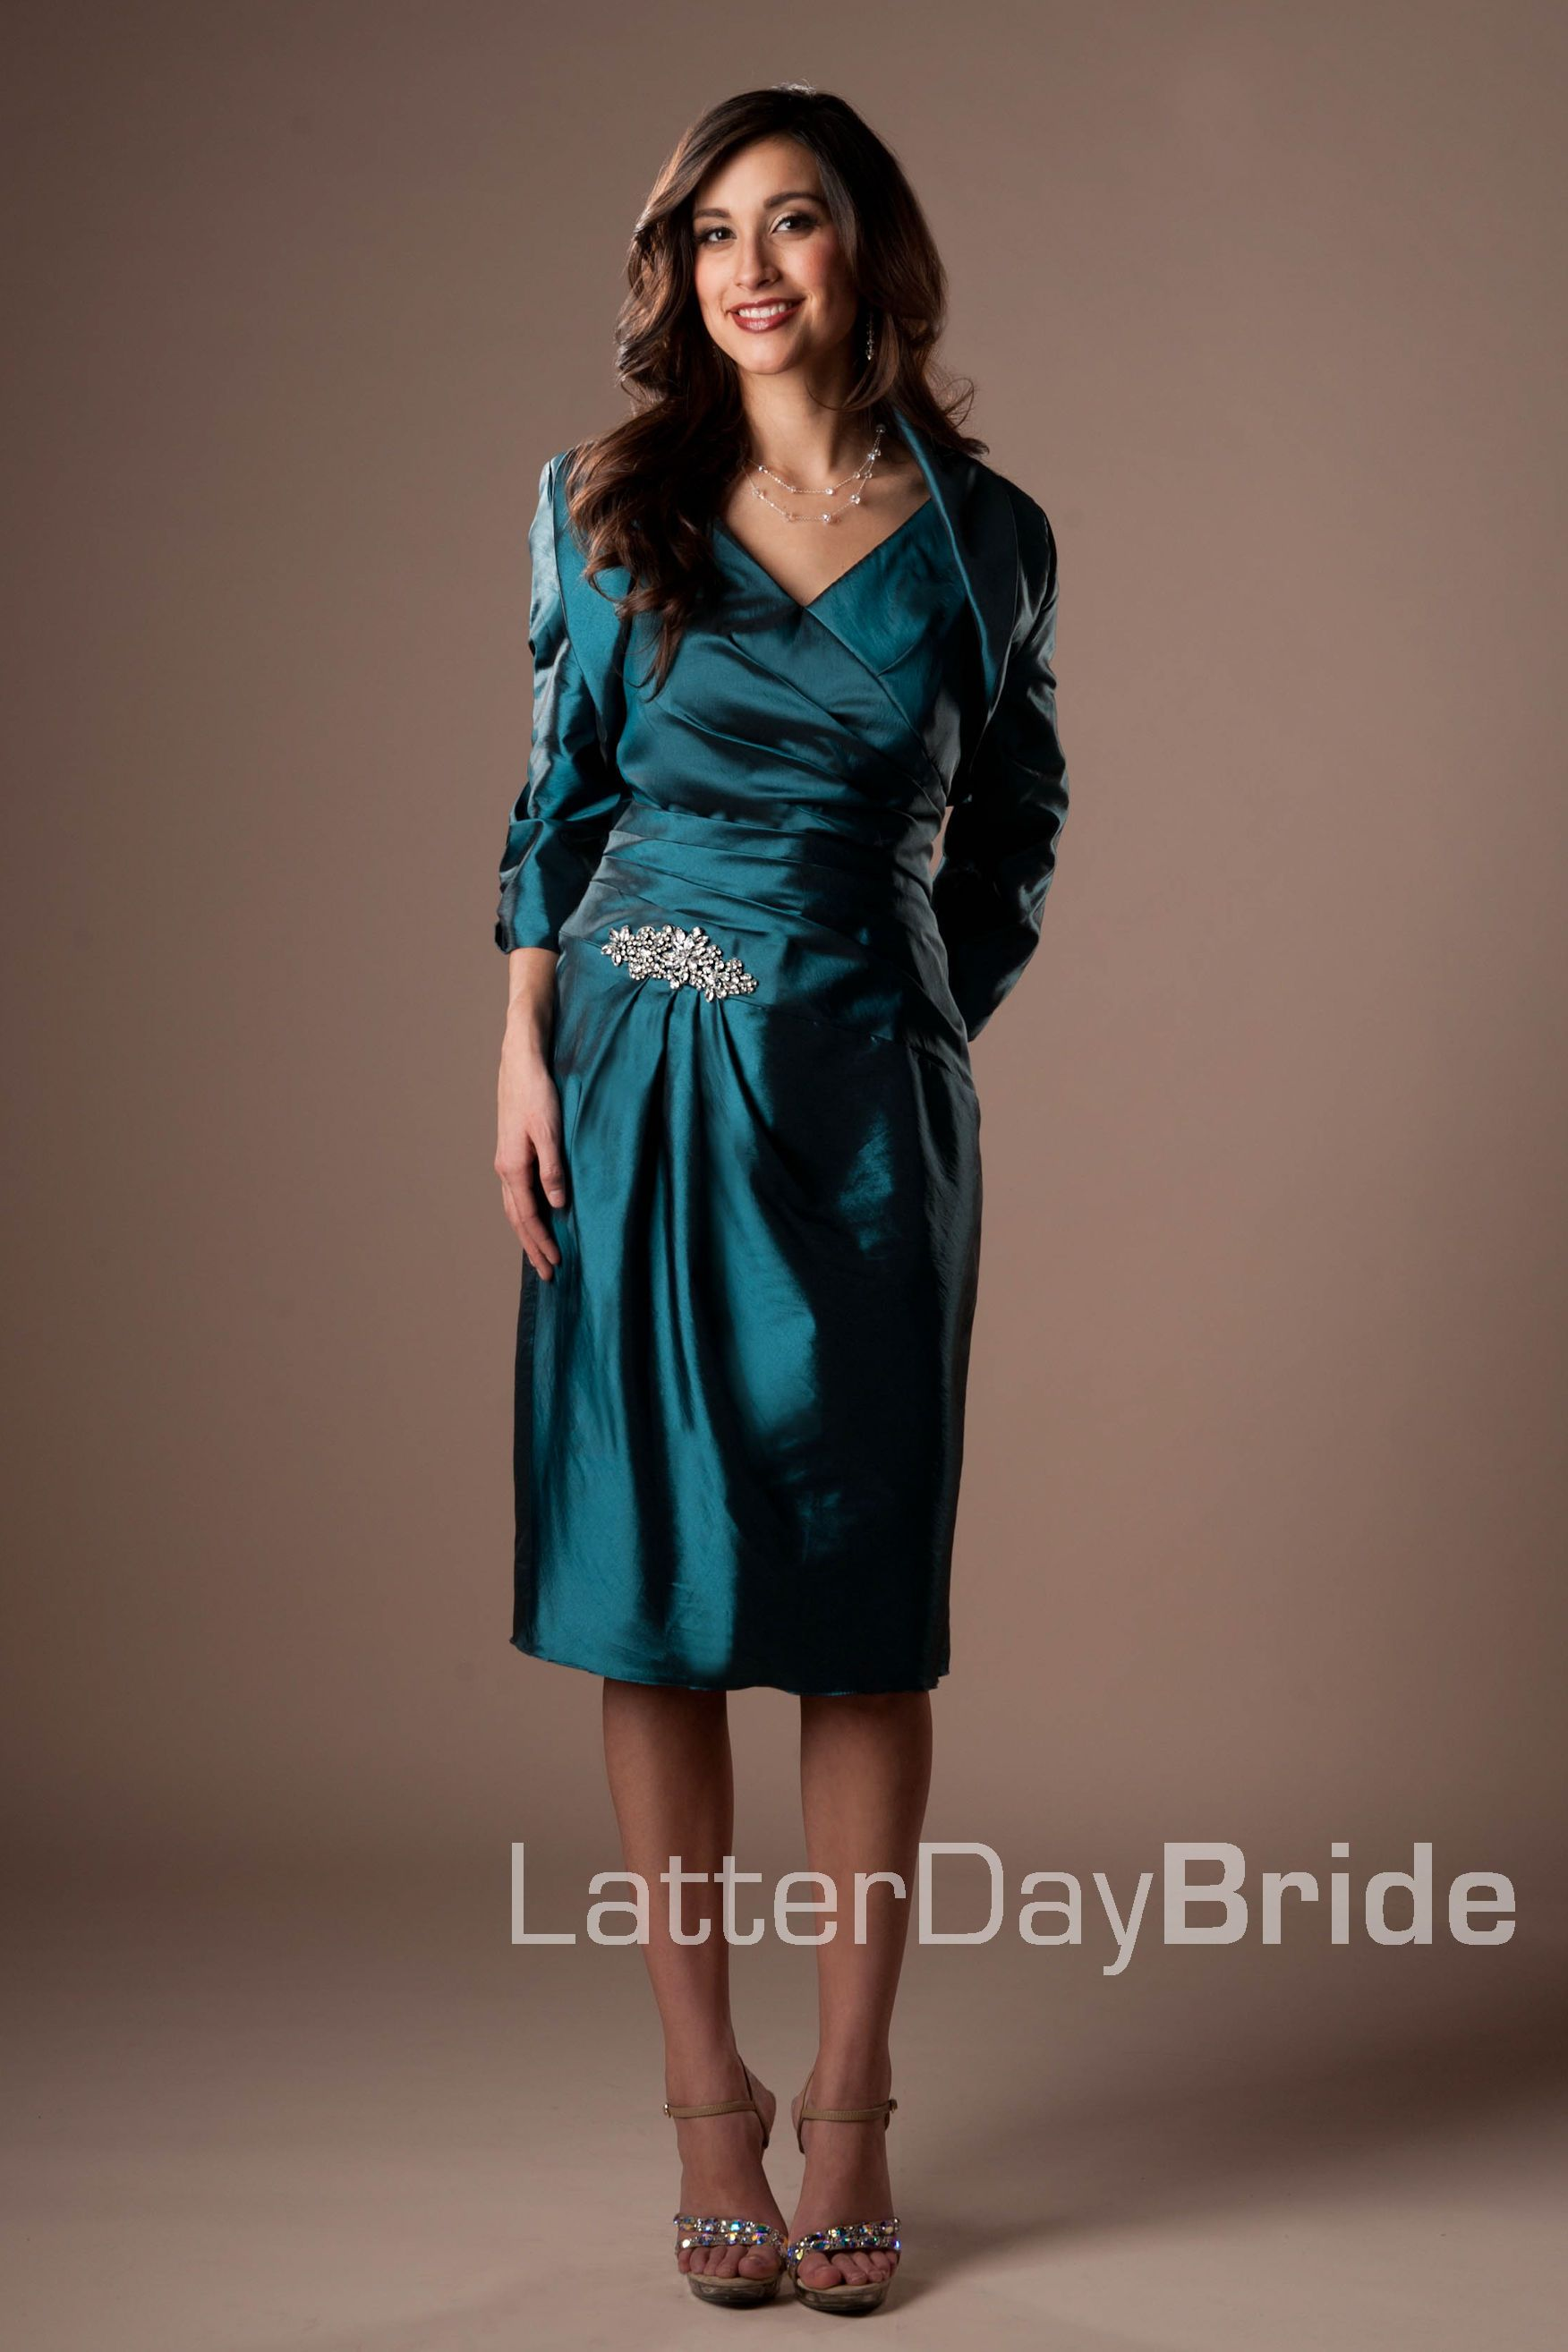 Mother of the Bride Dresses, Terri | LatterDayBride & Prom -Modest ...